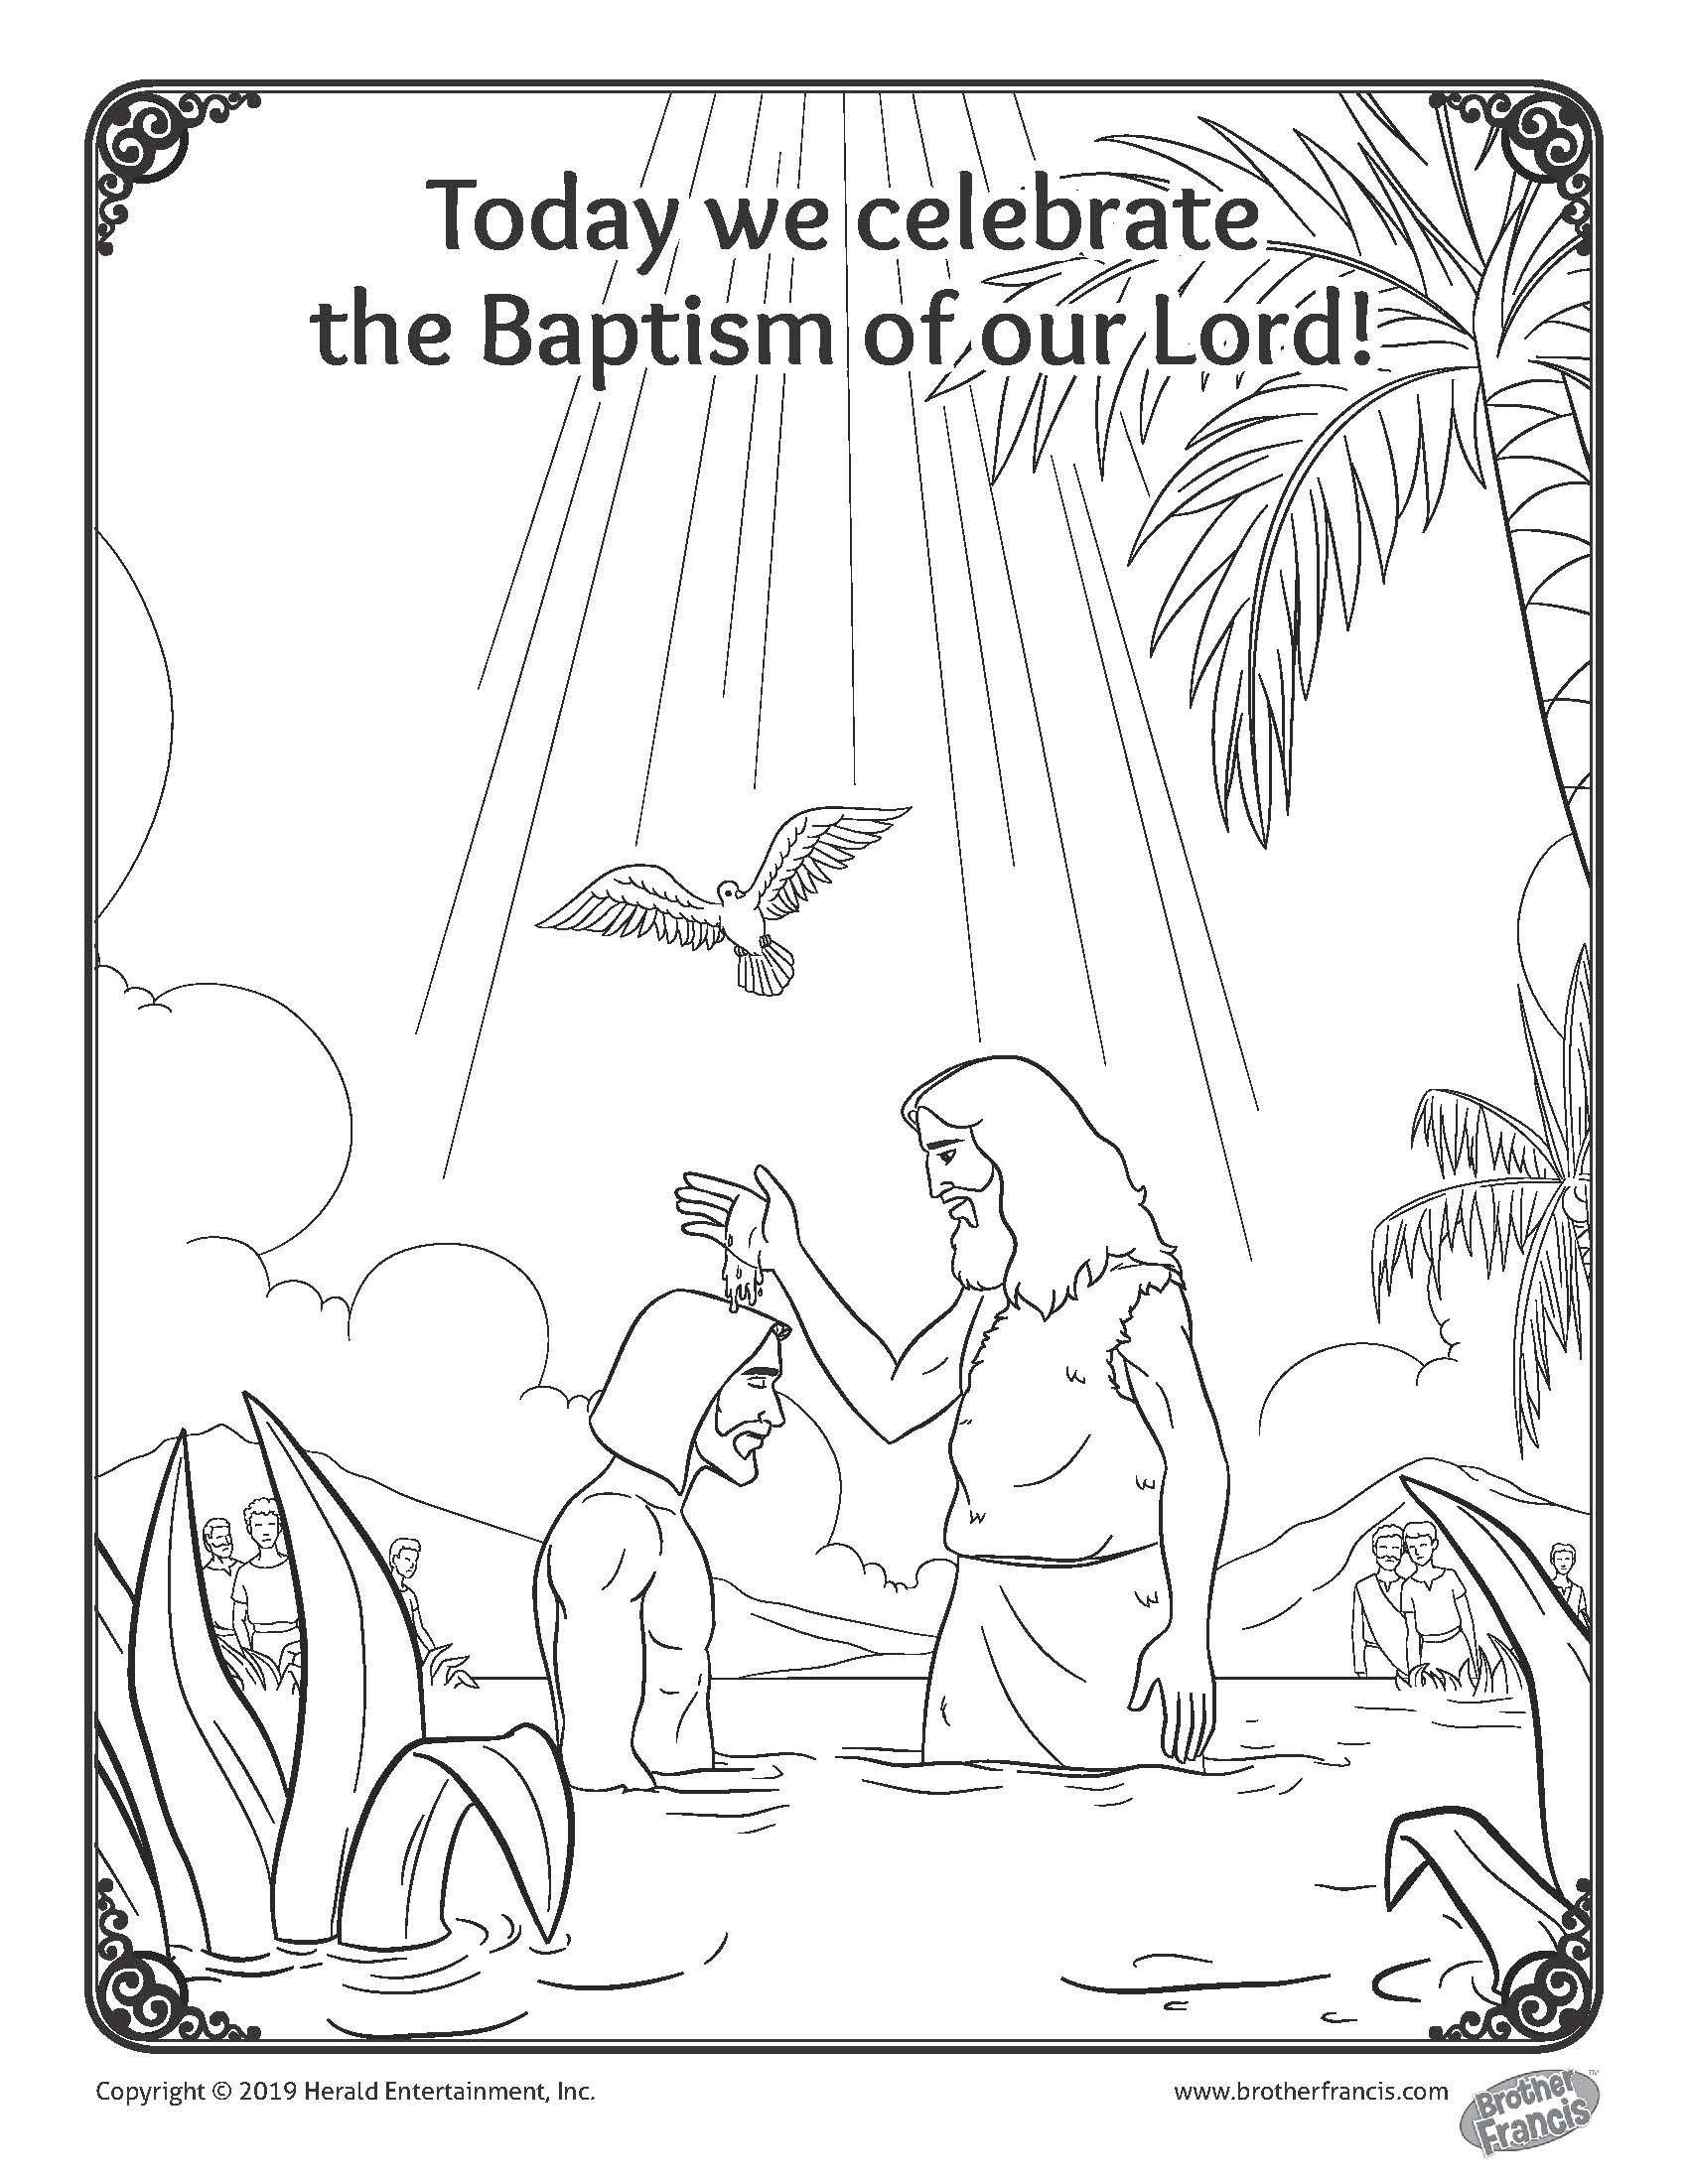 Baptism Of Our Lord Coloring Page Coloring Pages Free Coloring Pages Catholic Coloring